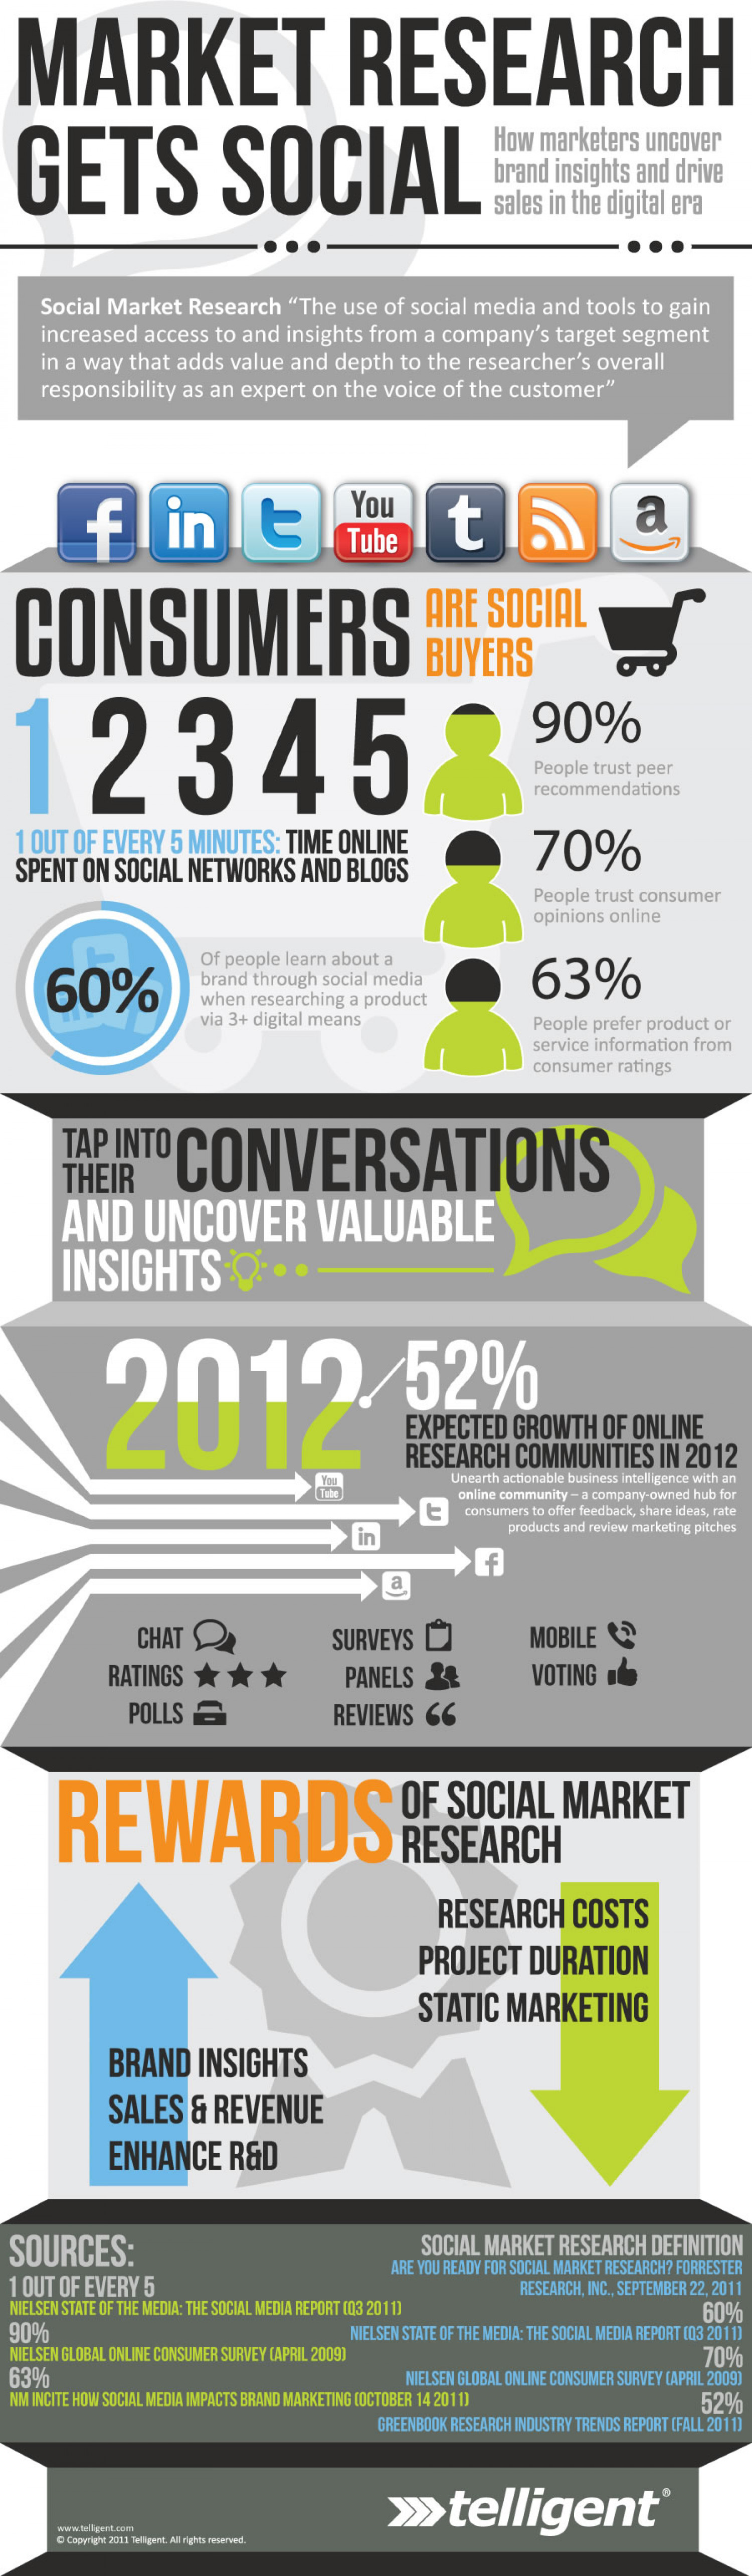 Online Communities for Social Market Research Infographic